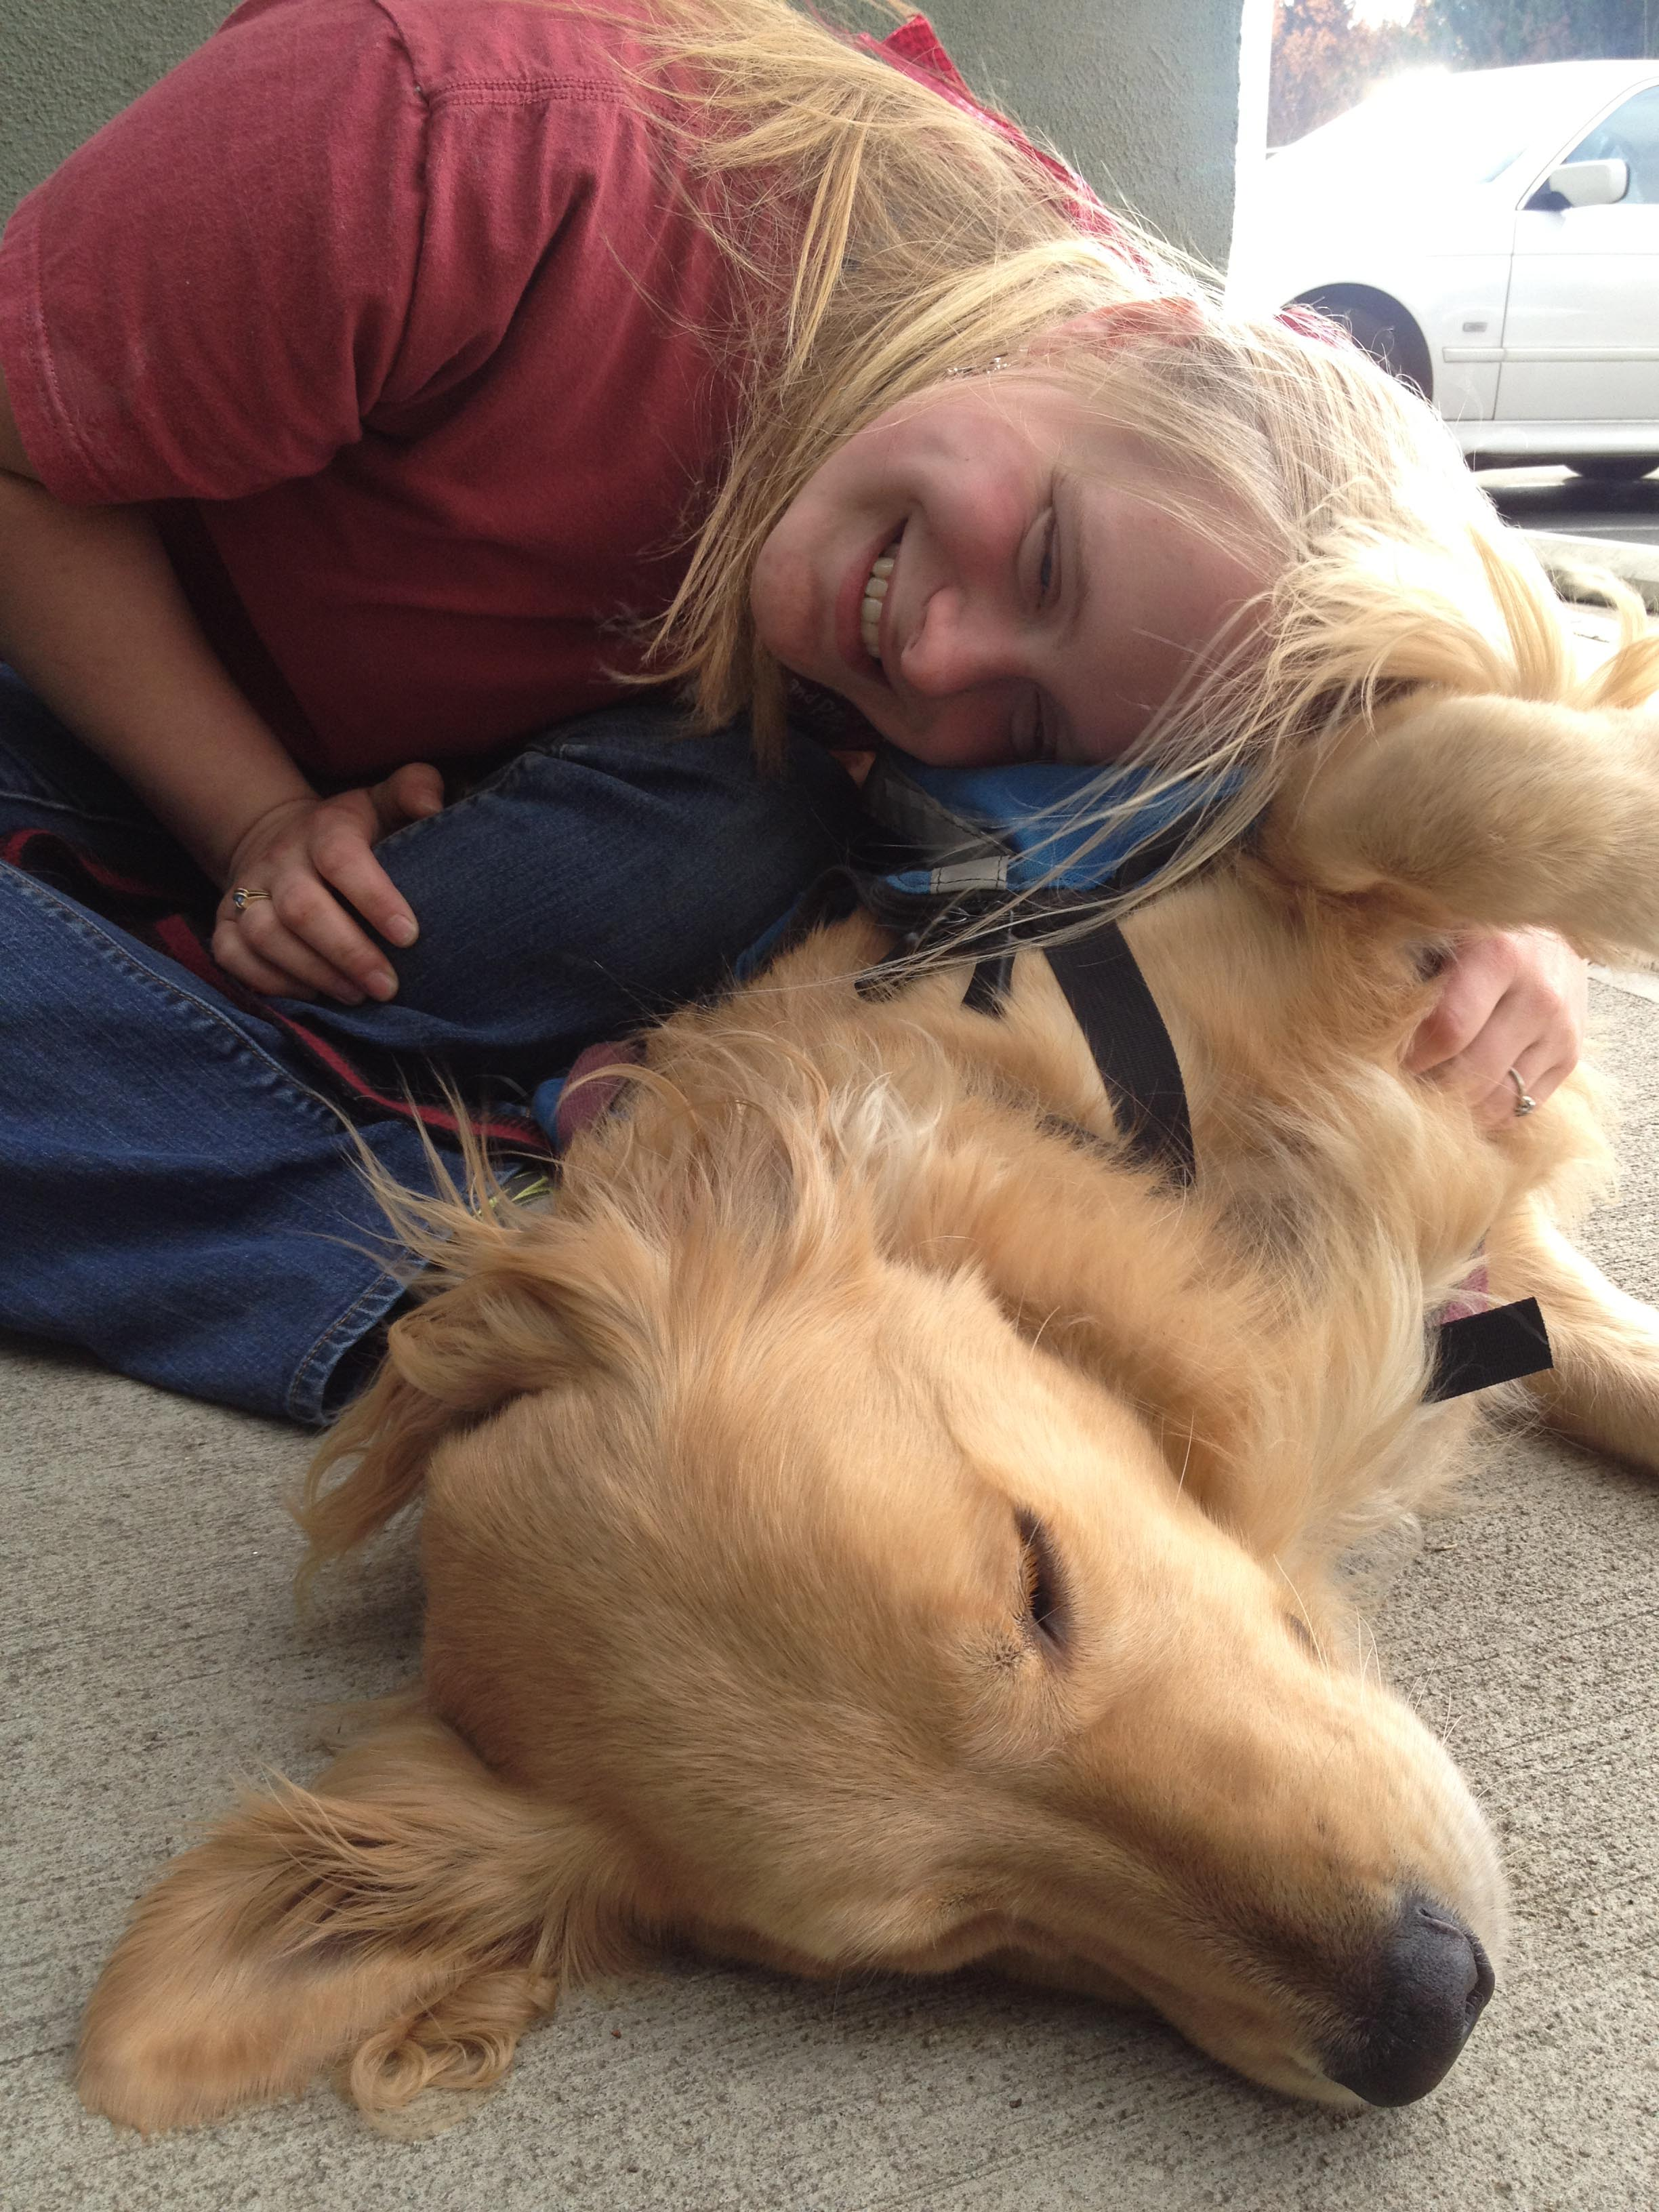 Young woman leaning into her dog and laughing